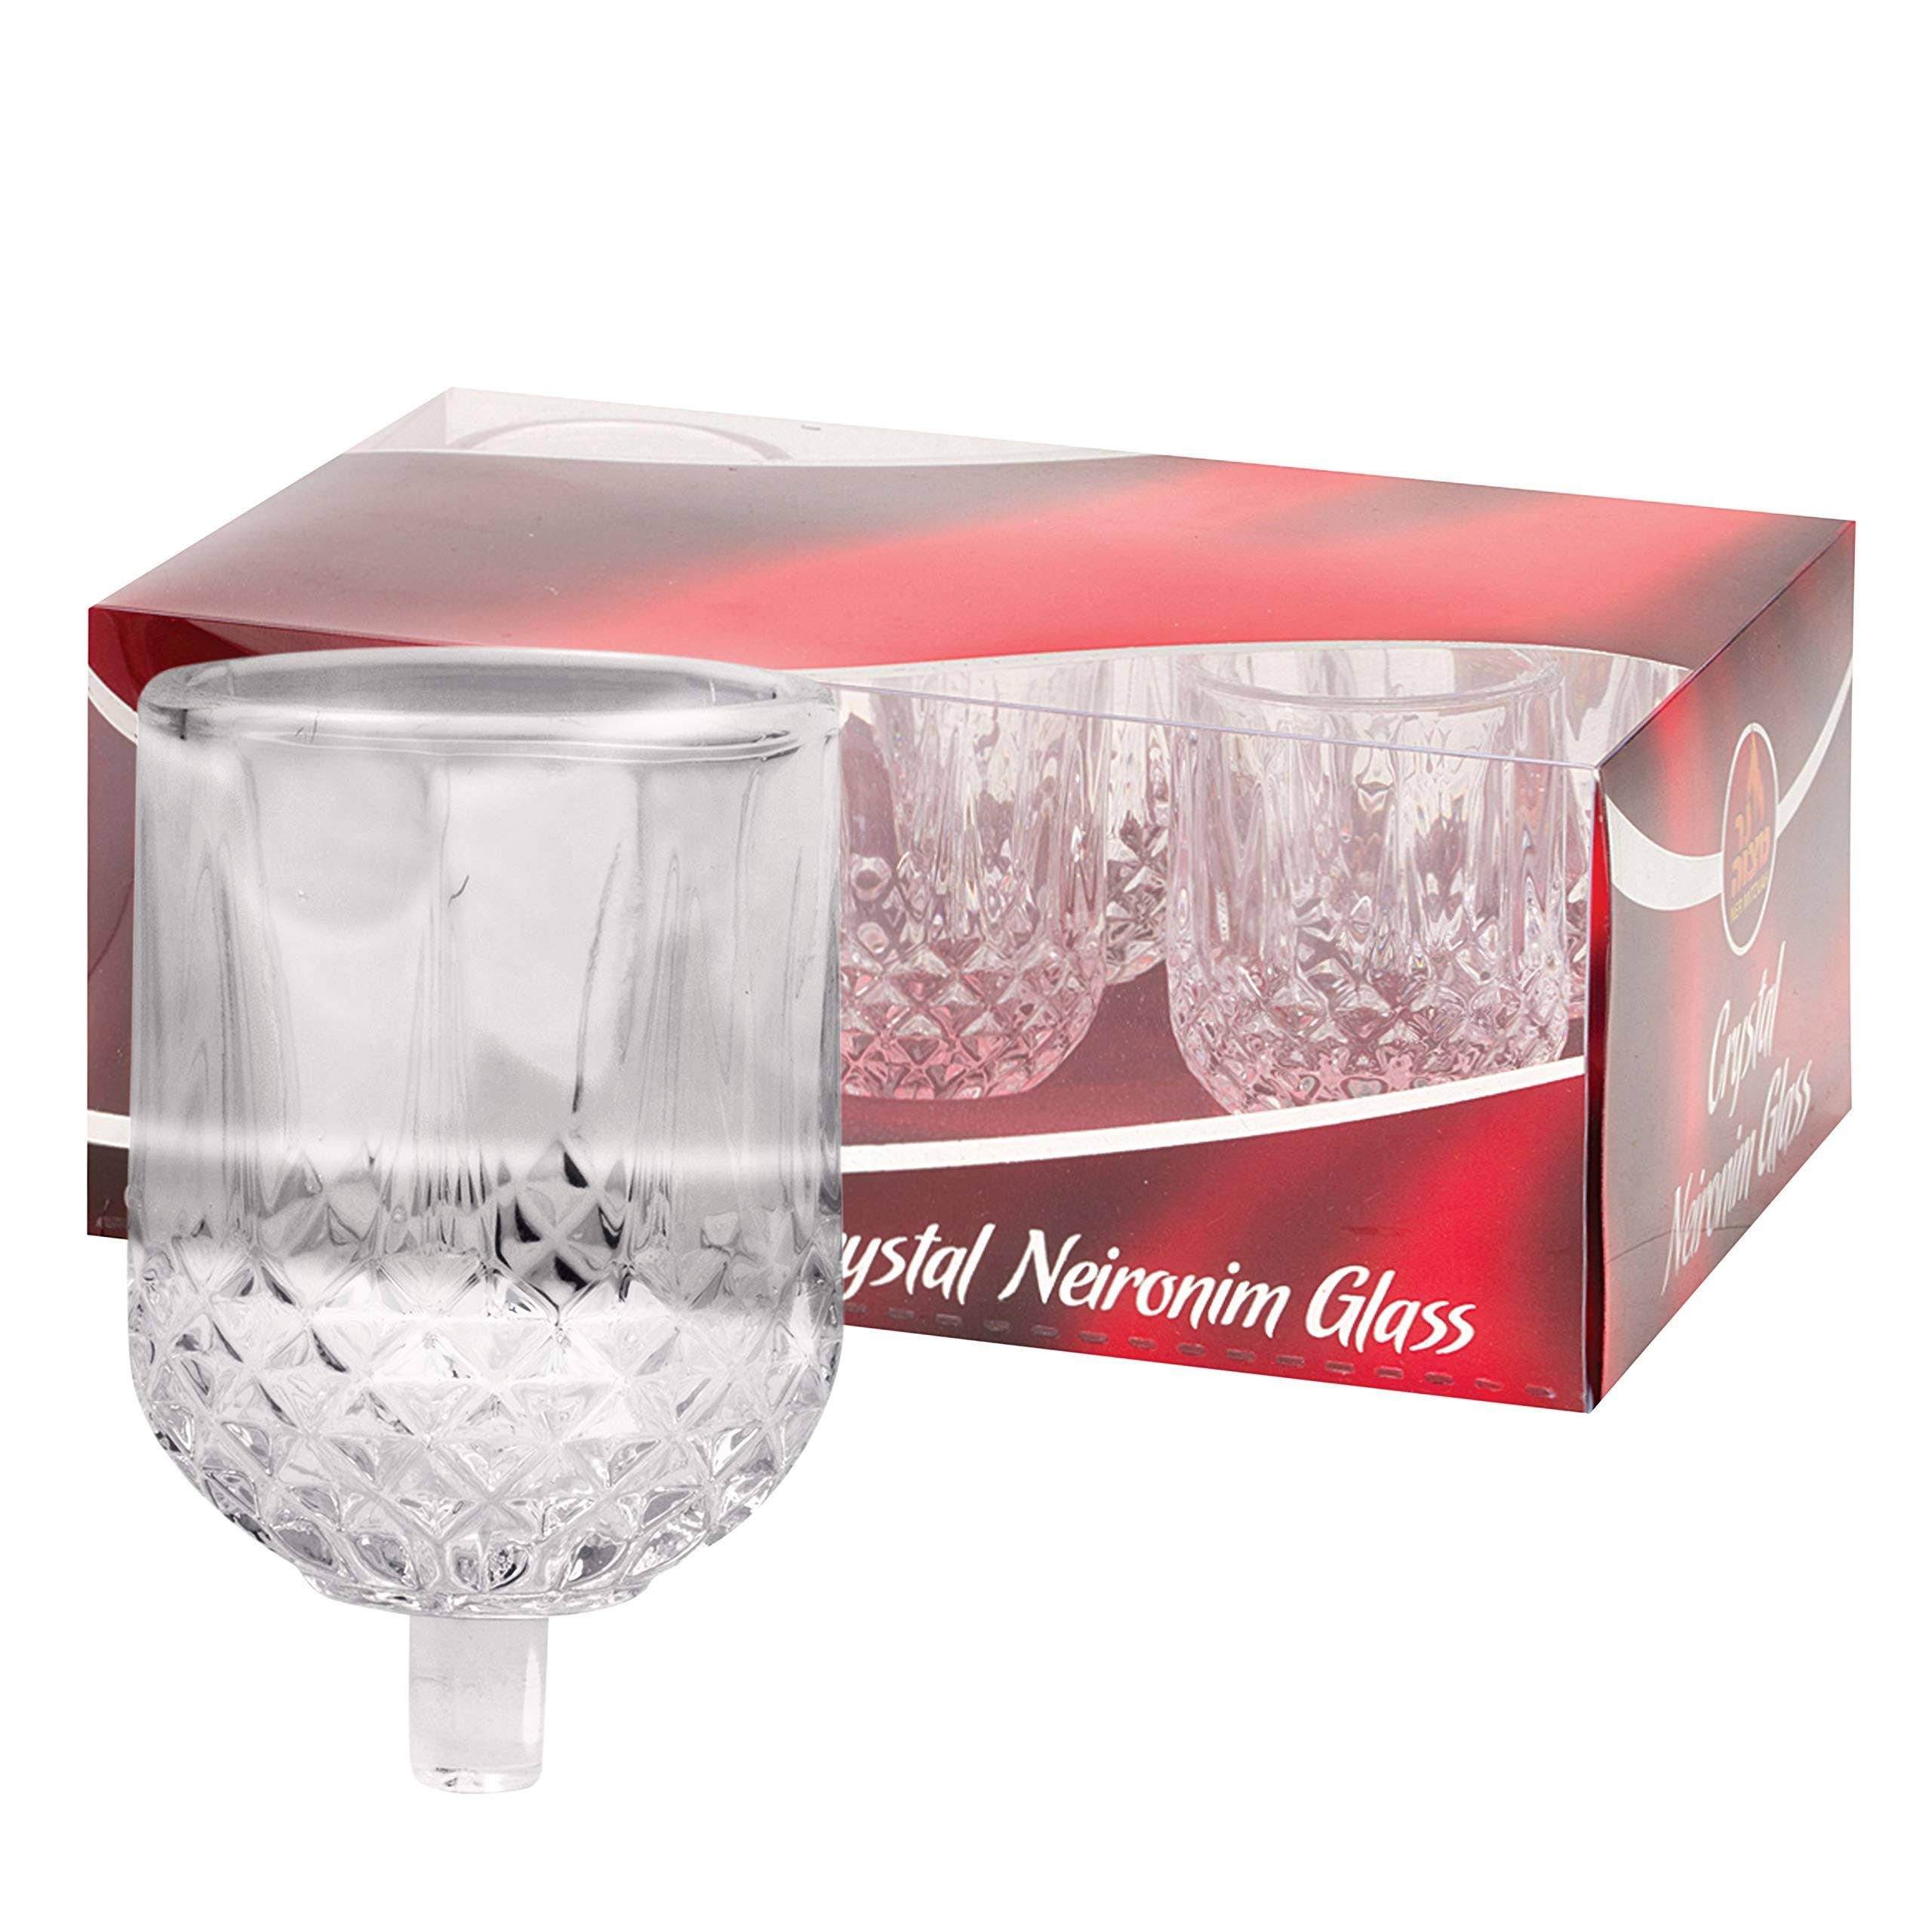 NER Mitzvah Neironim Crystal Shabbos Candle Holders - 6 Pack - Premium Quality Clear Votive Cups, Standard Size for Shabbat, Chanukah and Party